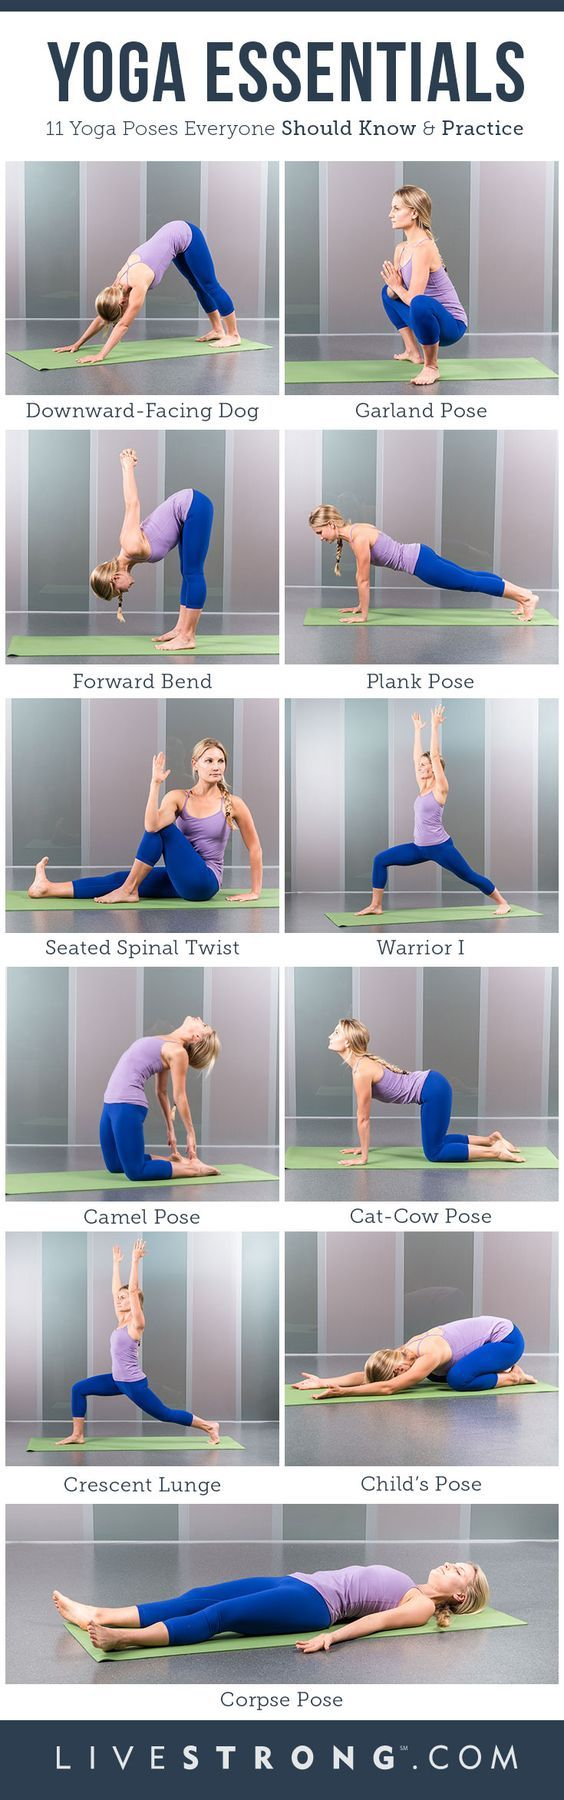 You may have a busy schedule every day, but even fitting in just 10 minutes to practice yoga poses can reap huge benefits. These include increased strength and flexibility, and greater energy. They are also a great way to warm up before a workout in the g